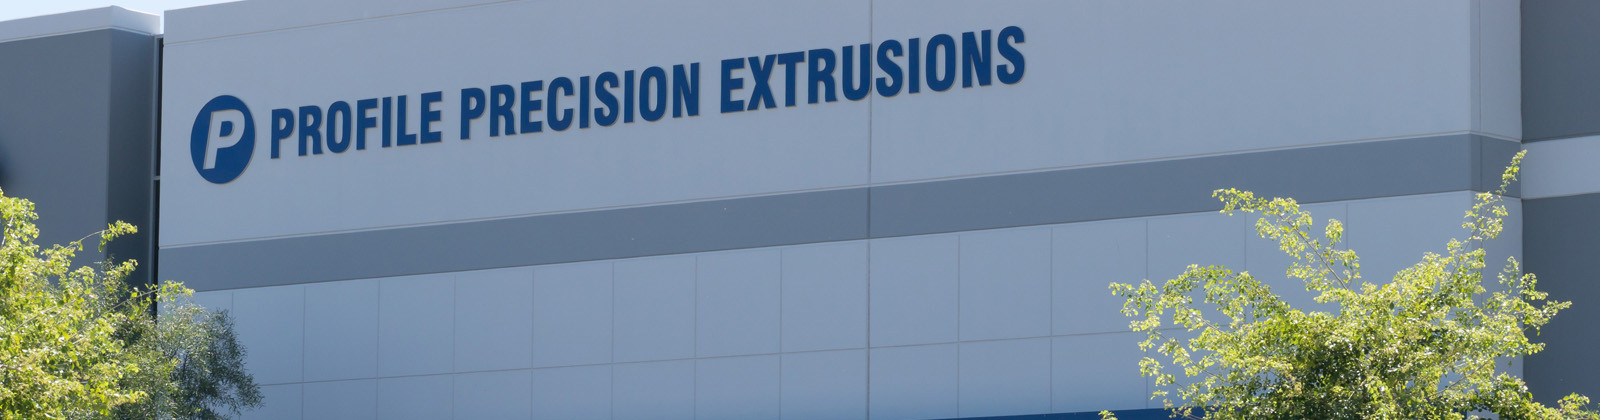 Profile Precision Extrusions Building